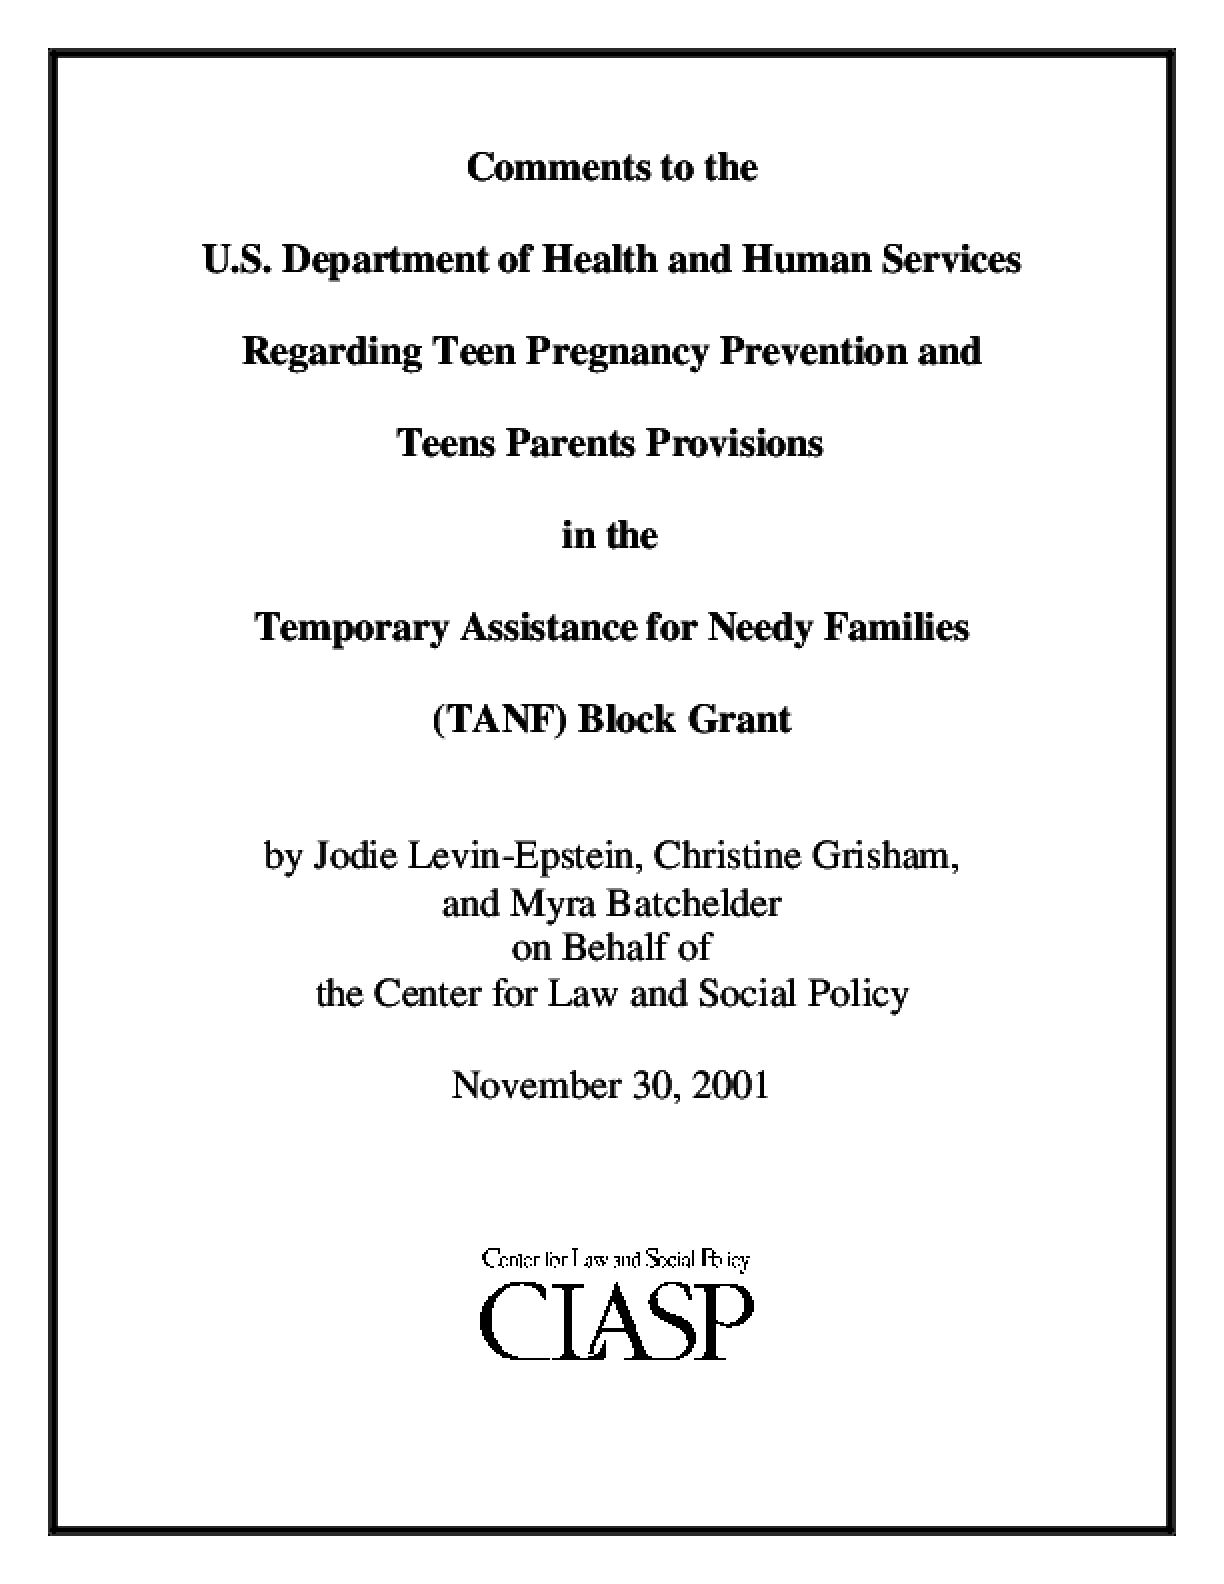 Comments Regarding Teen Pregnancy Prevention and Teen Parents Provisions in the Reauthorization of the Temporary Assistance for Needy Families (TANF) Block Grant